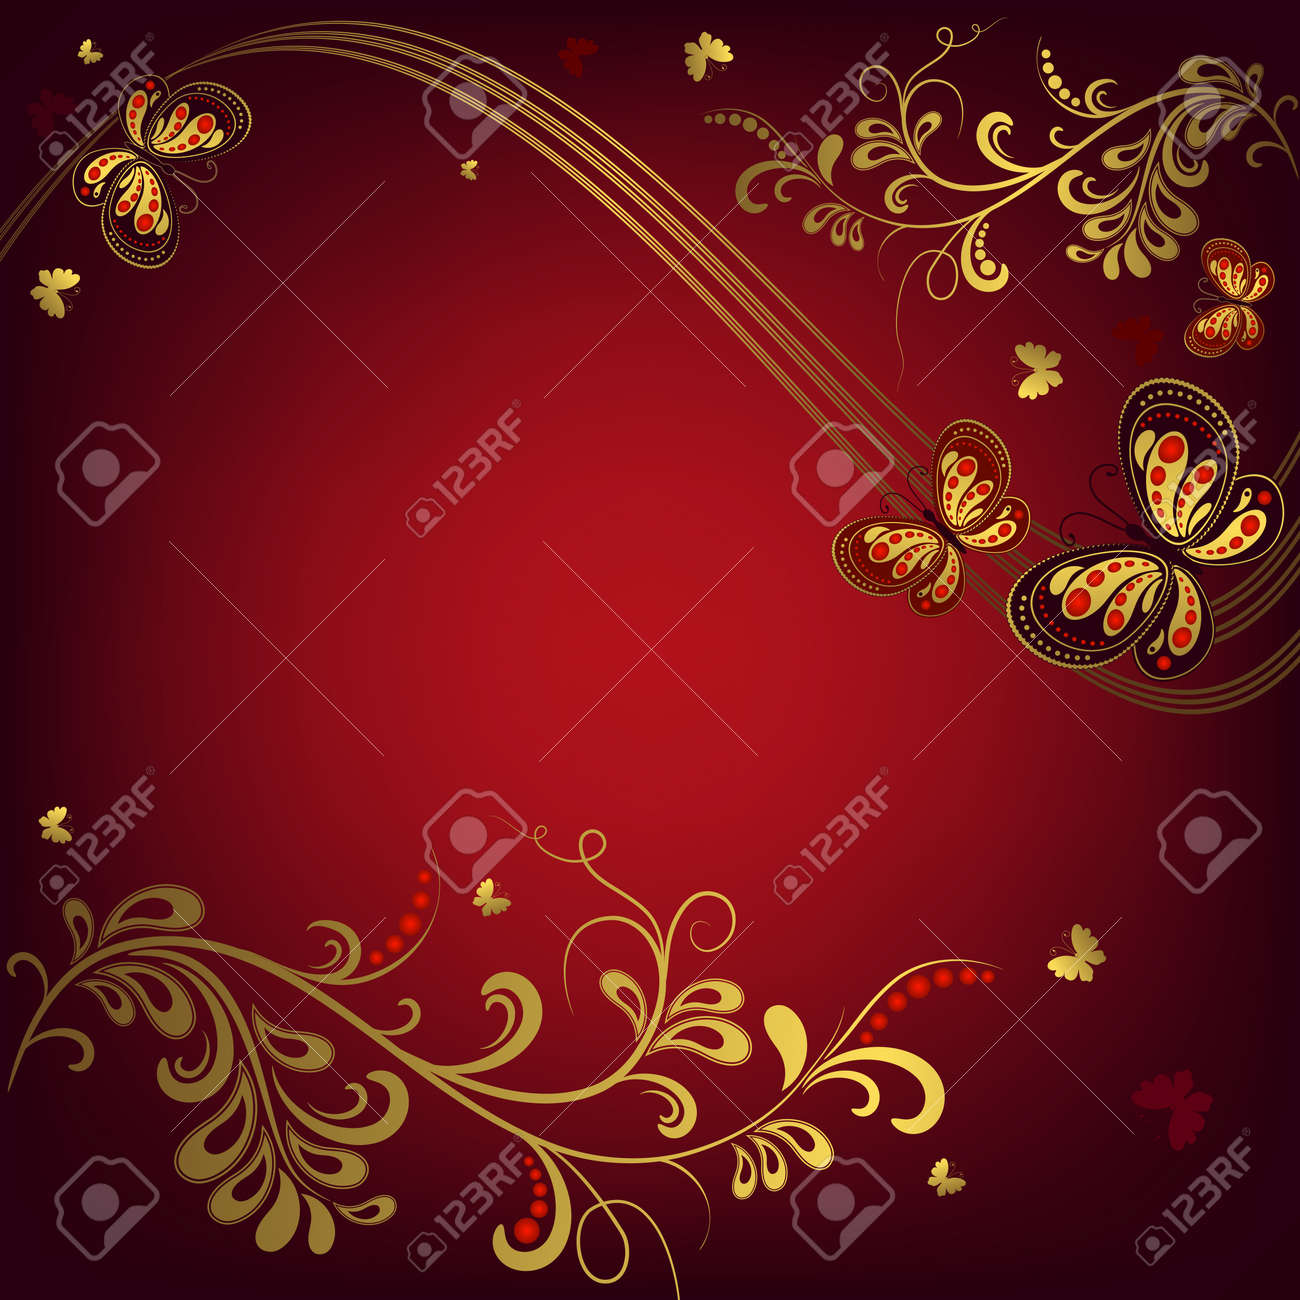 728cf3b3bf3 Decorative floral red and golden background with curls and butterflies Stock  Vector - 7030614